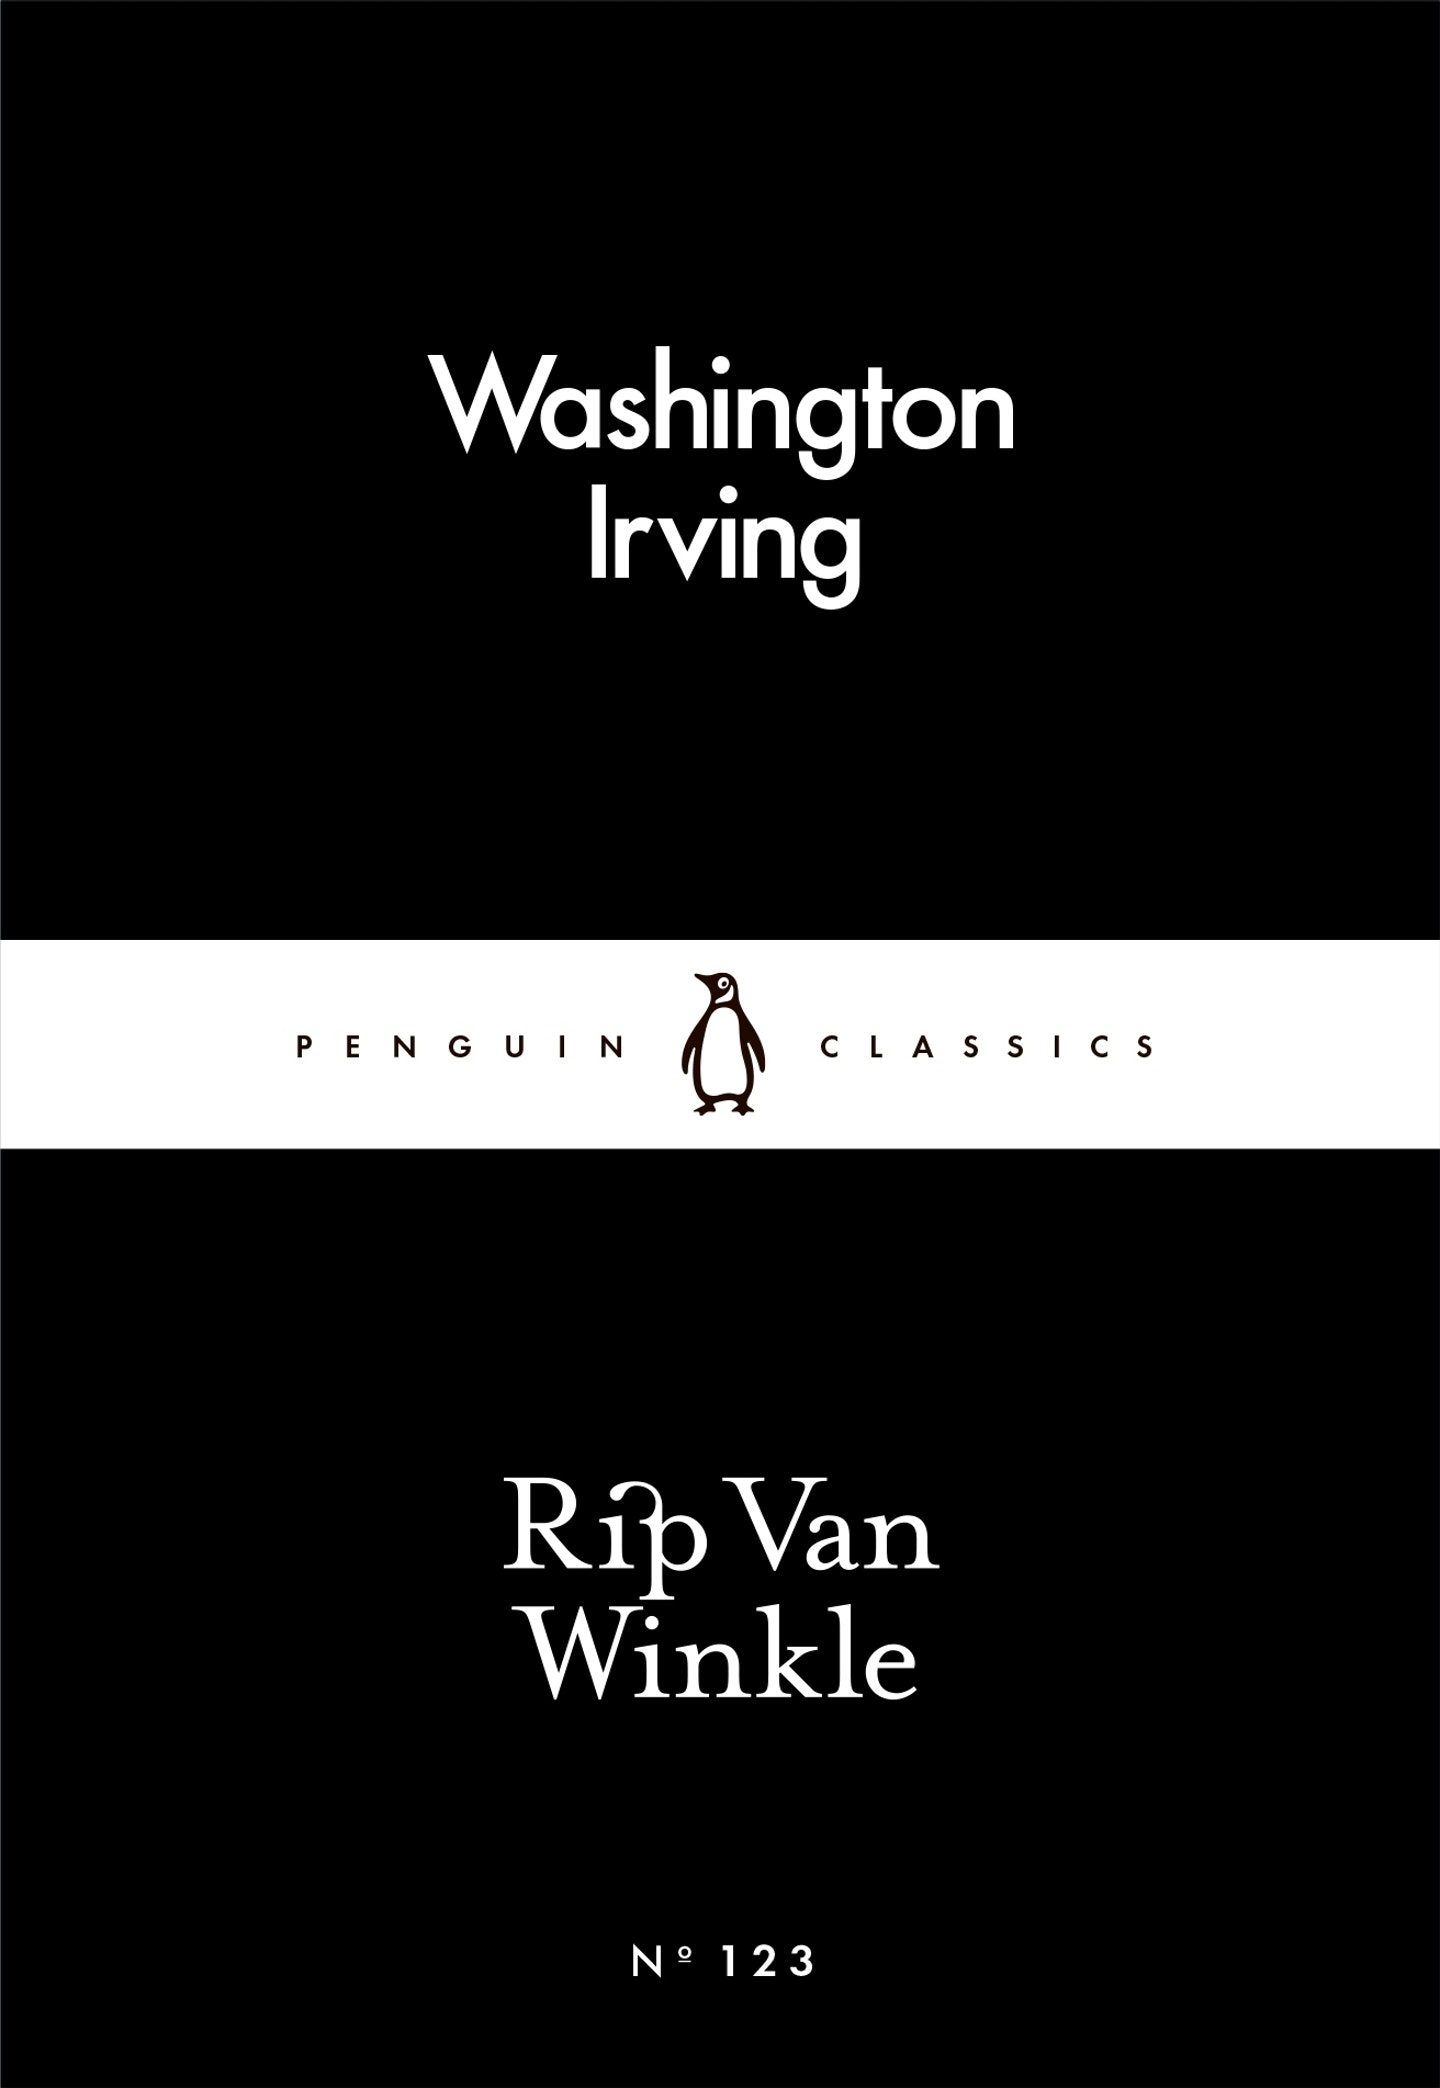 rip van winkle essay images about rip van winkle b and d auto repair images about rip van winkle b and d auto repair